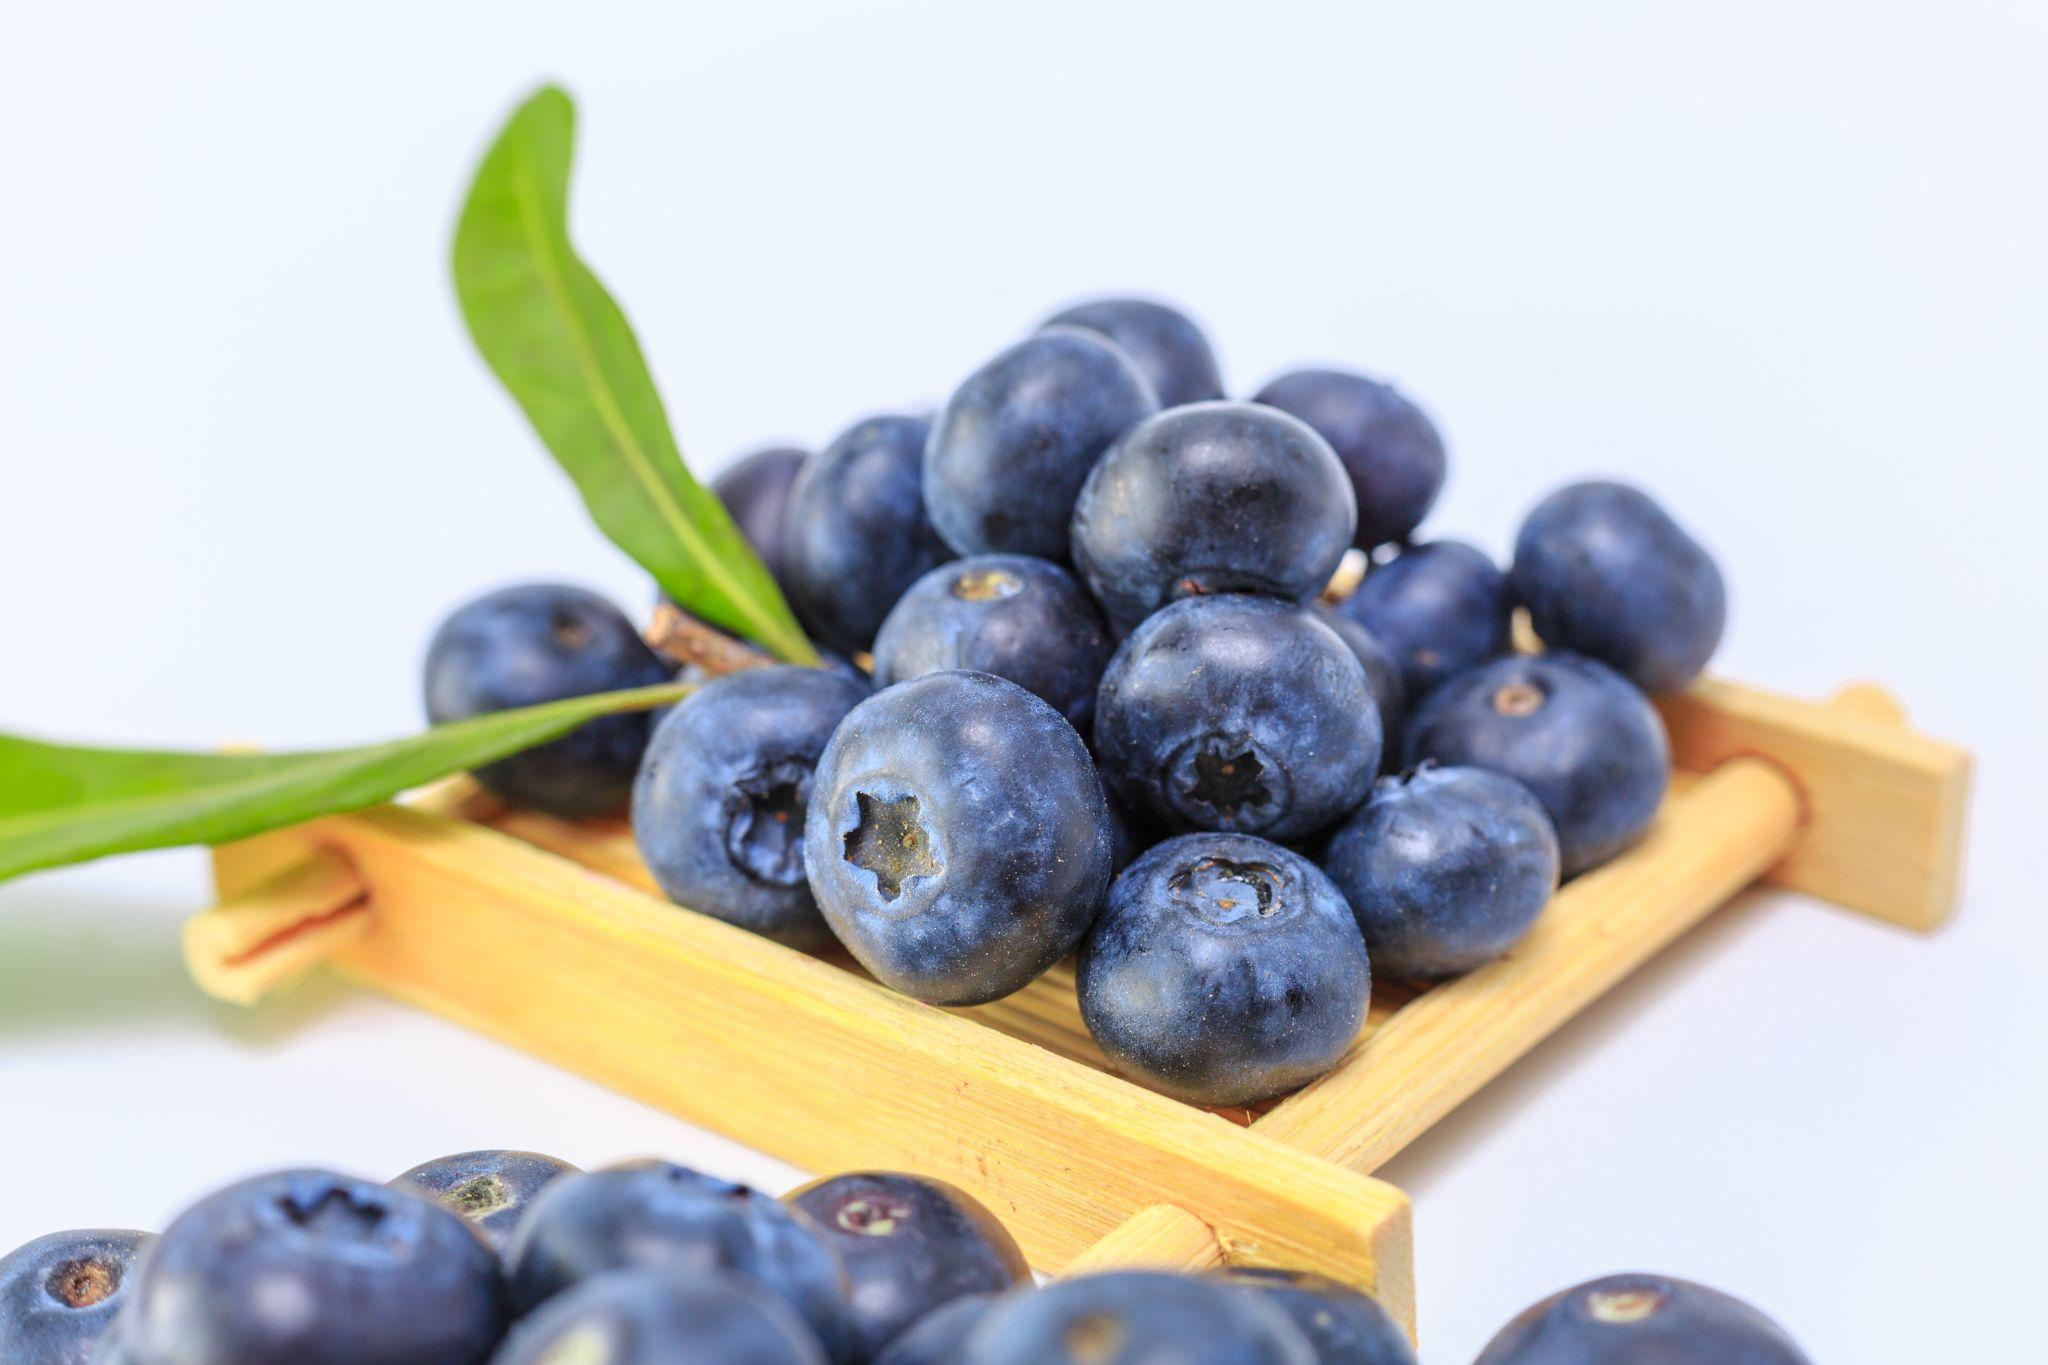 Blueberry, blueberries and memory, blueberries brain function